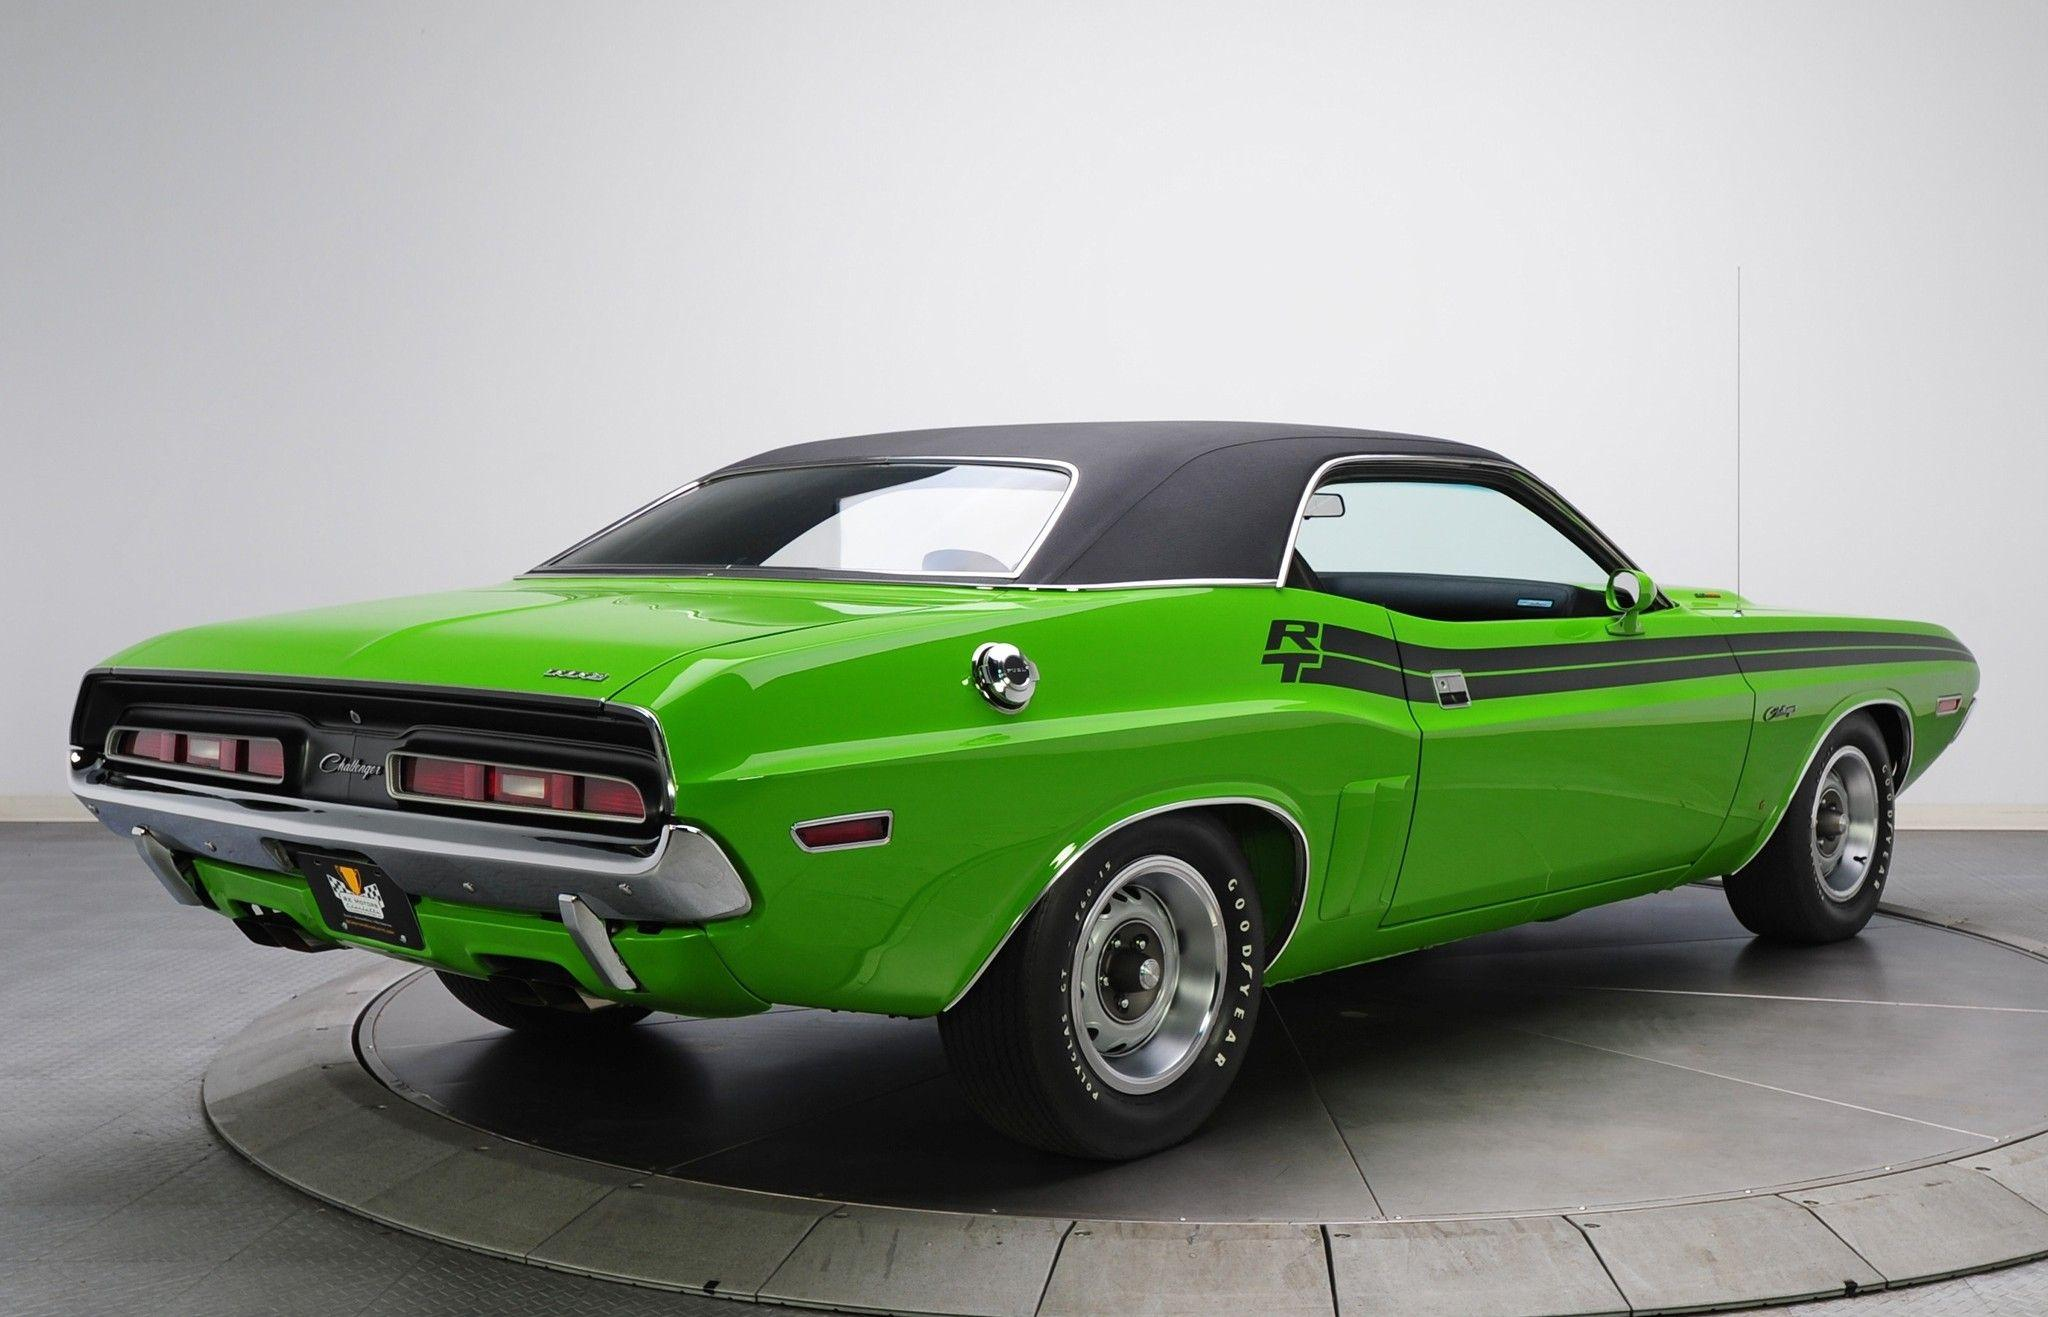 Download 2048x1317 Dodge Challenger R/t 383 Magnum, Green, Back View